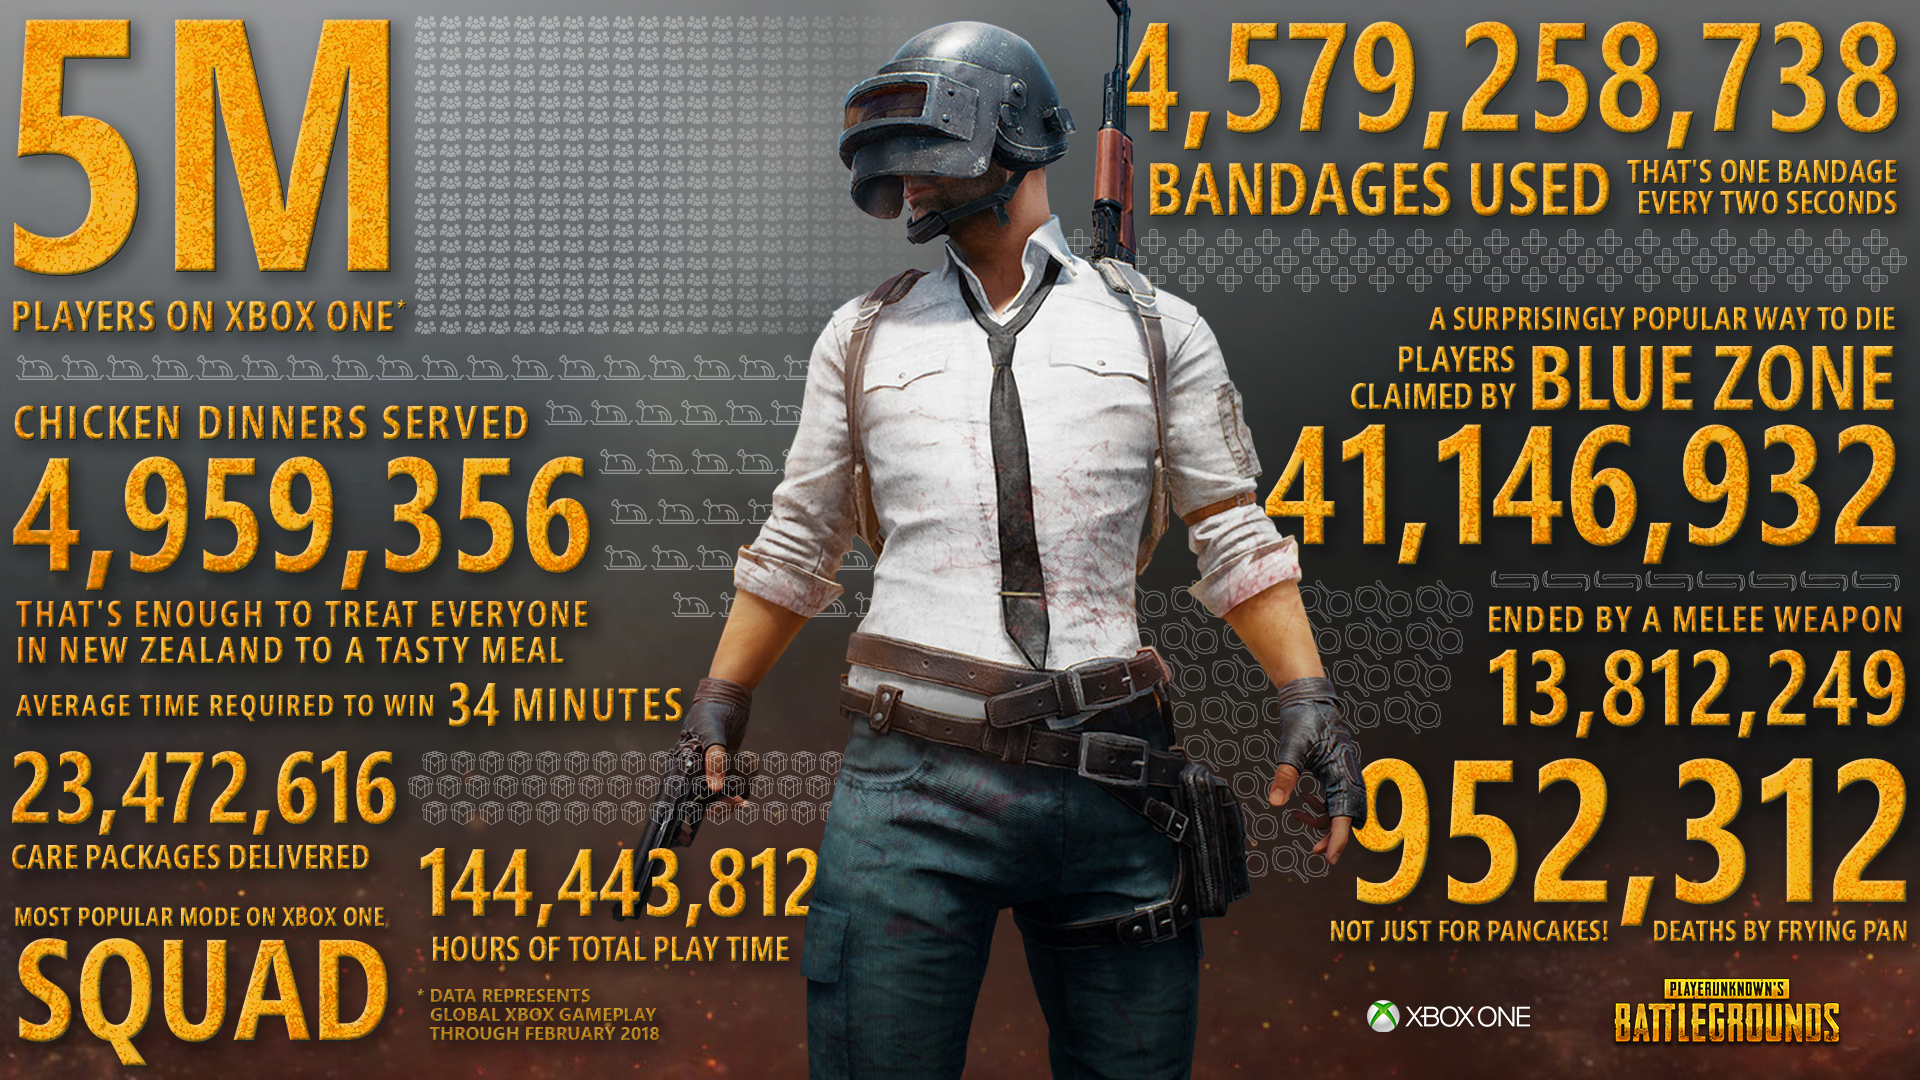 Pubg Xbox One: PUBG Xbox One Surpasses 5 Million Players In Less Than 3